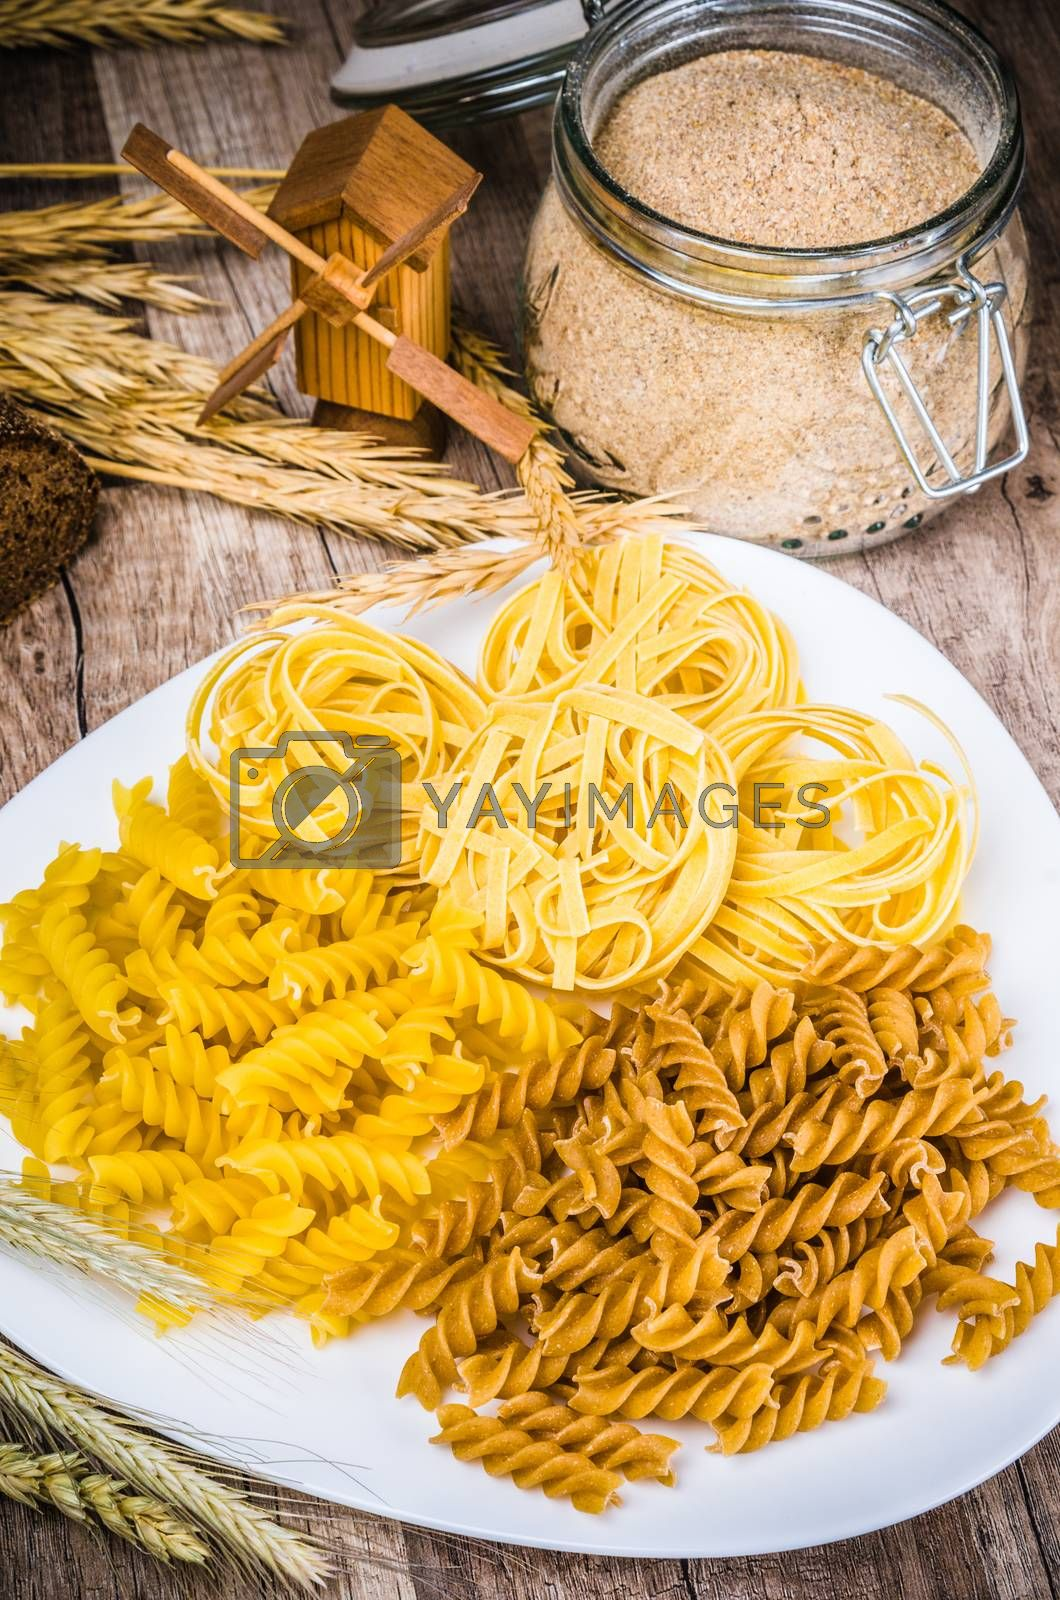 Variety of pasta, flour and rye cones